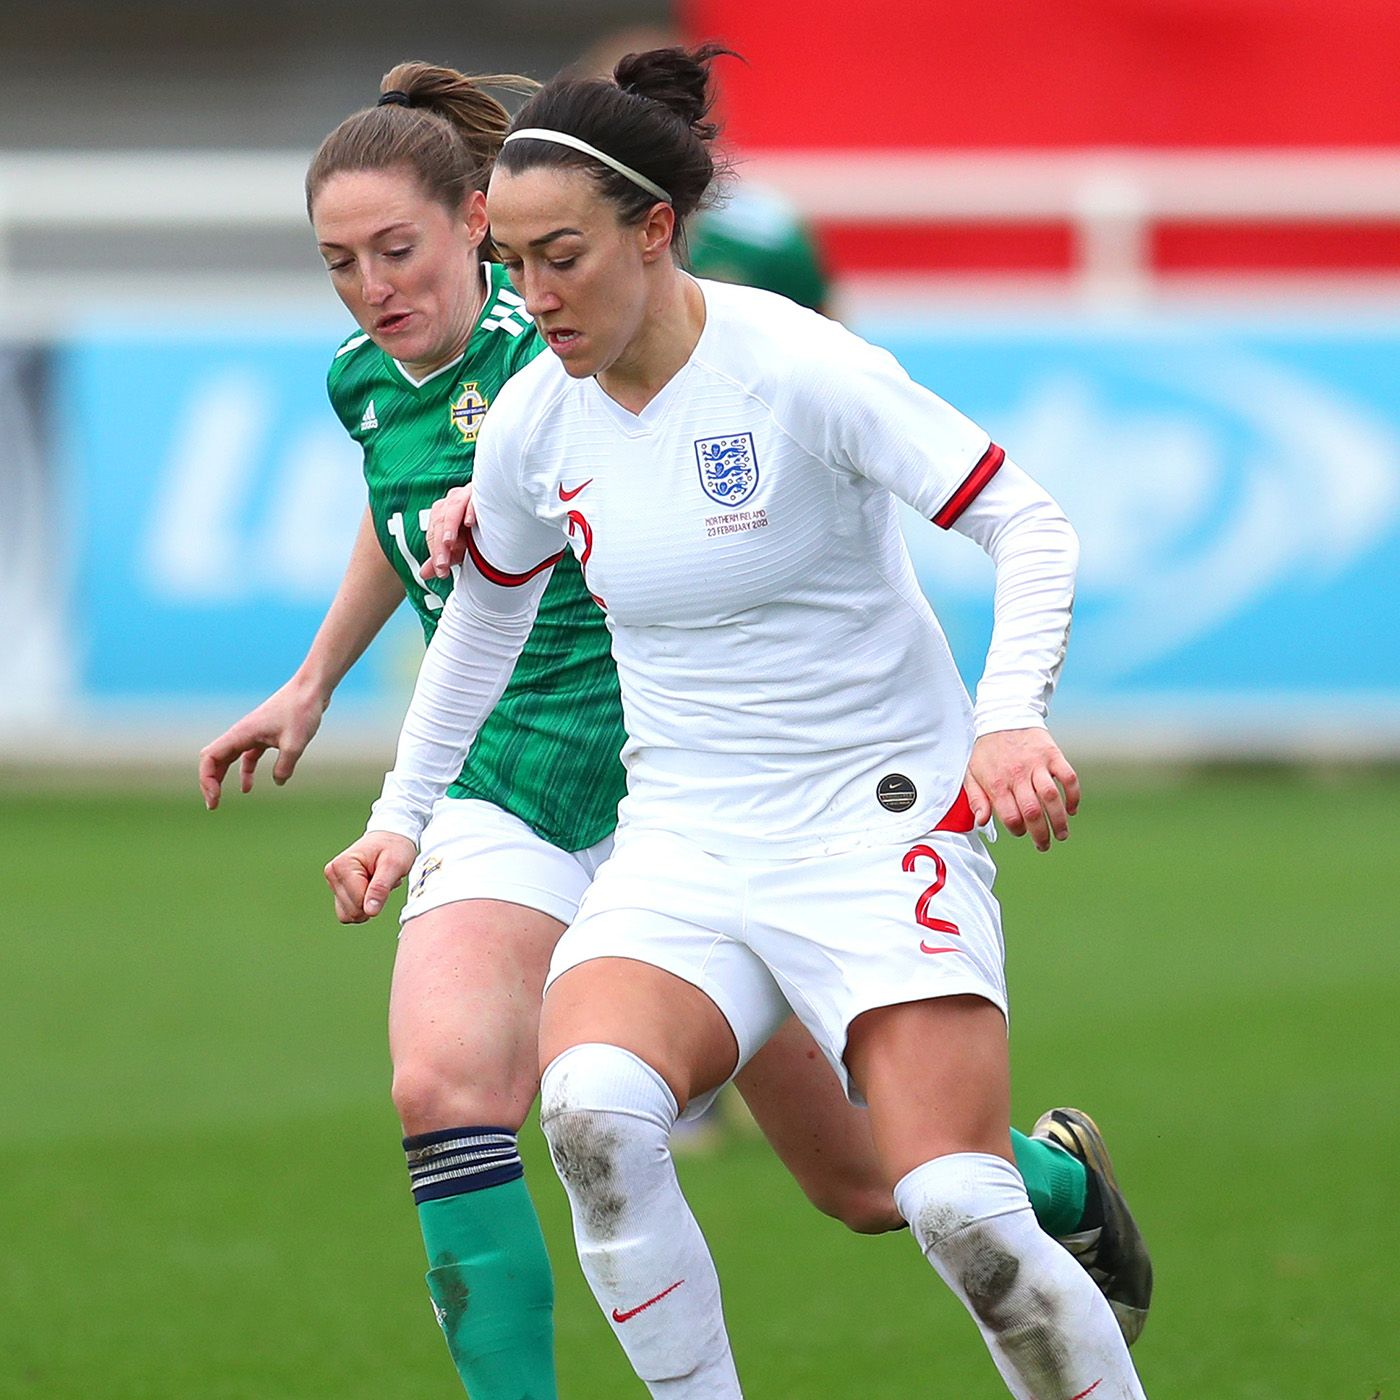 The Women's Football Show: England's Lucy Bronze on women's safety, menstrual cycles and scientific developments in the women's game